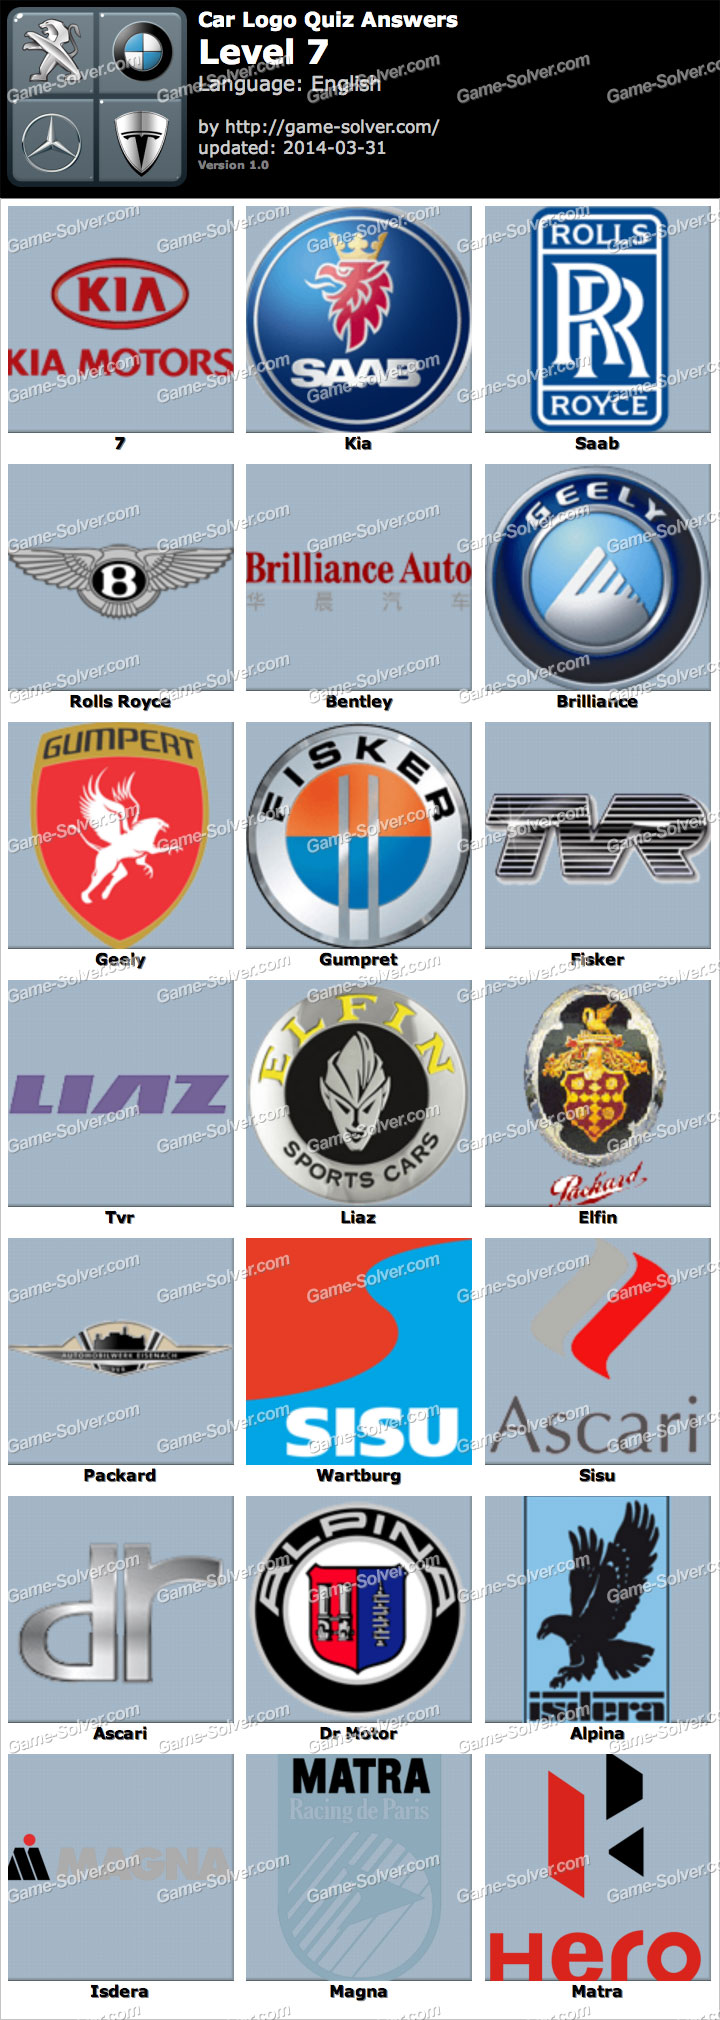 Car Logo Quiz Level 7